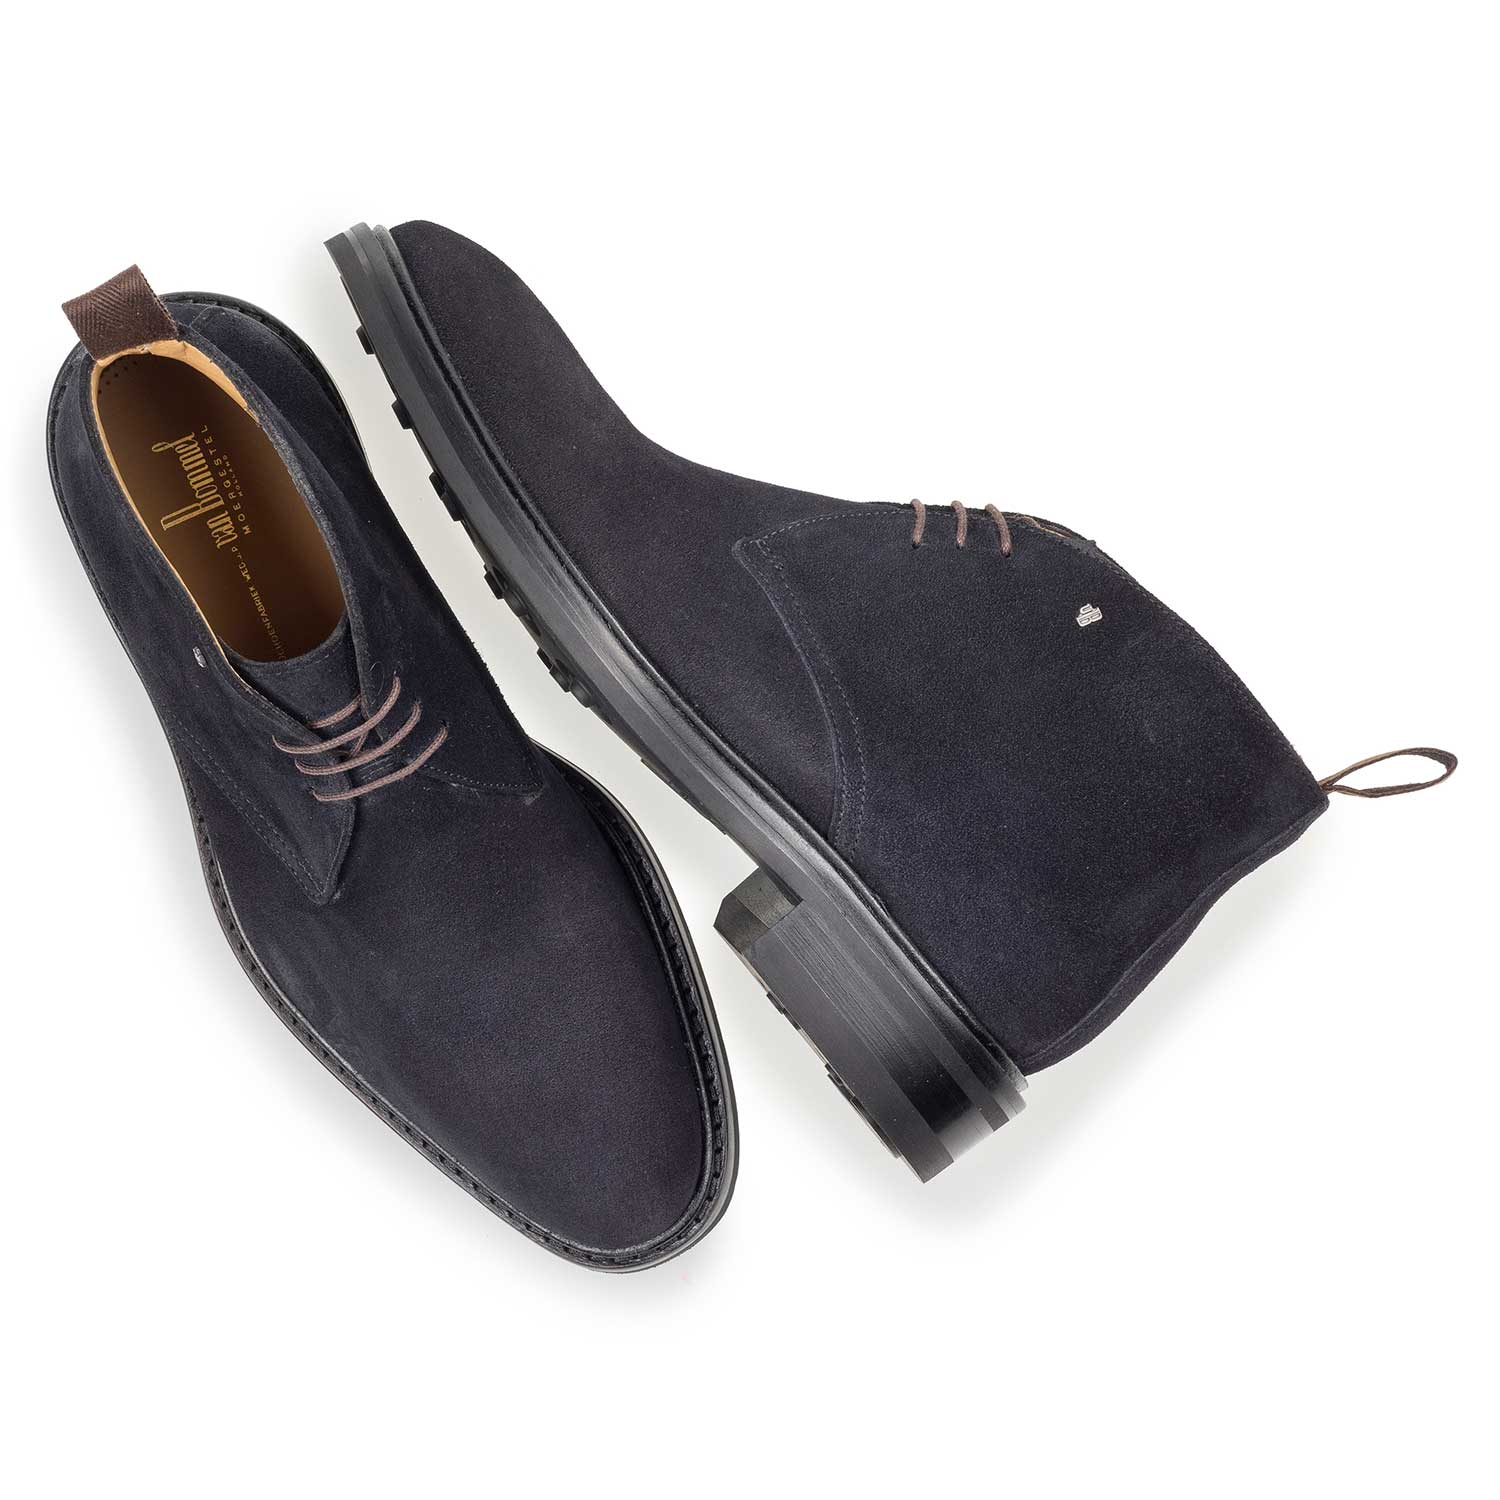 10161/01 - Dark blue suede leather lace boot